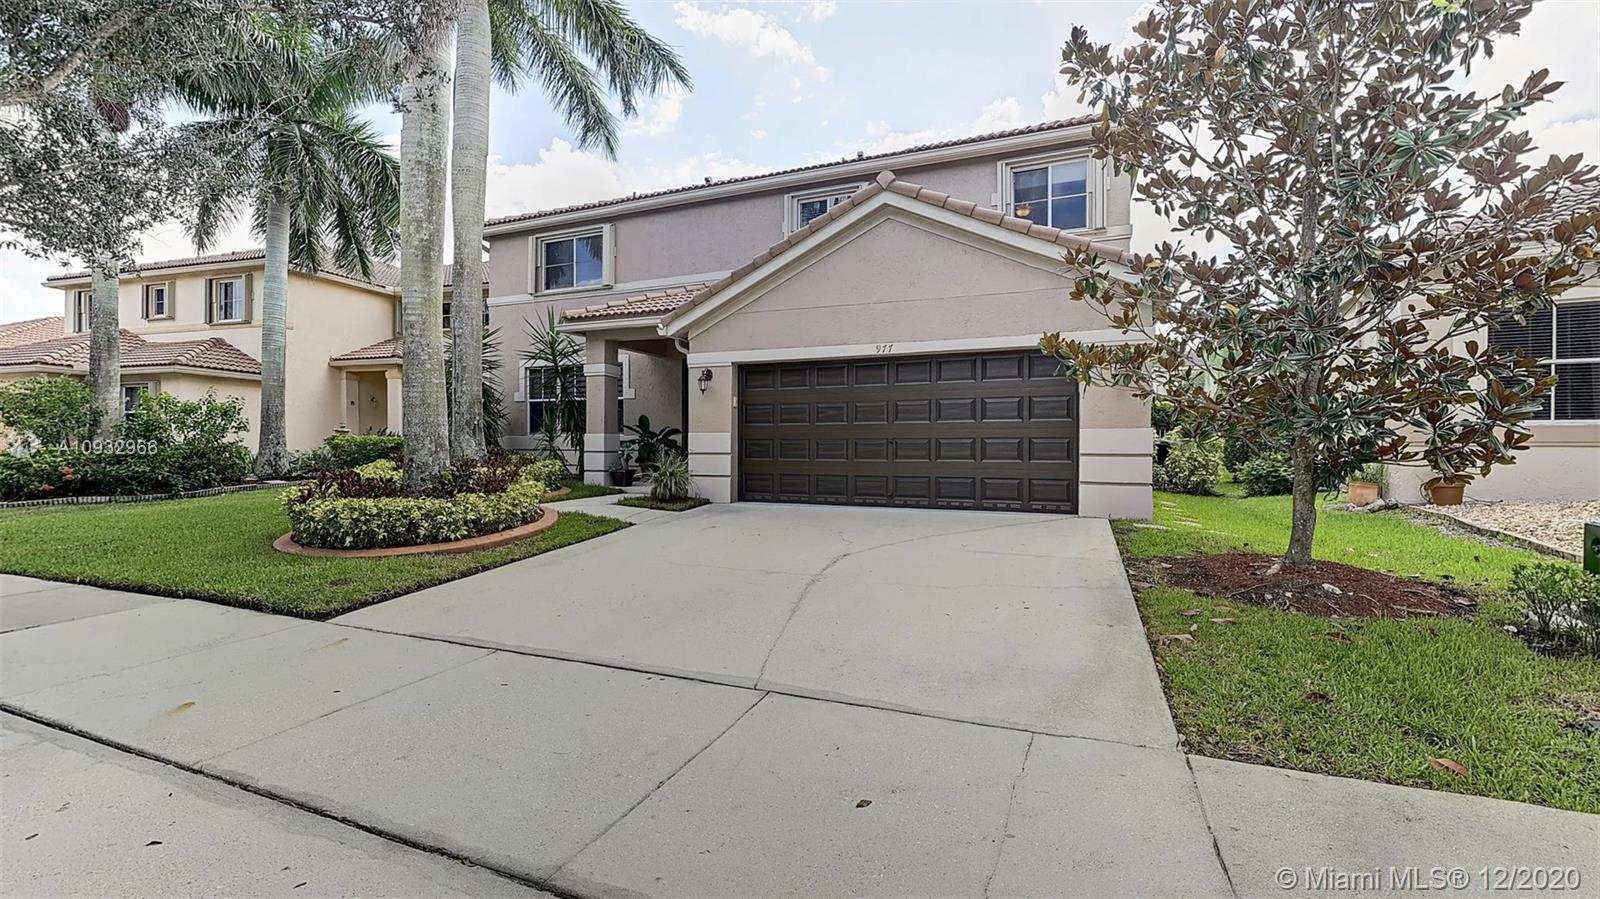 Welcome home to this amazing property located in the desirable gated community of Savannah. A two story home with vaulted ceilings, 5 bedrooms, 3.5 bathrooms, The kitchen was totally remodeled with Italian style custom made cabinets, exotic marble countertops and stainless steel appliances. Pool deck has a temperaturestablestone pool deck, full out door kitchen, it has multi level platforms, raised spa, salt water pool system,exquisitely designed with plenty of space for entertaining, two car garage, accordion hurricane shutters. This house was upgraded with impeccable taste in a very exclusive community, with a children's playground, beautiful lakes, and 24hrs Security. community gym, A+Schools, shopping centers, parks, major highways and main streets.